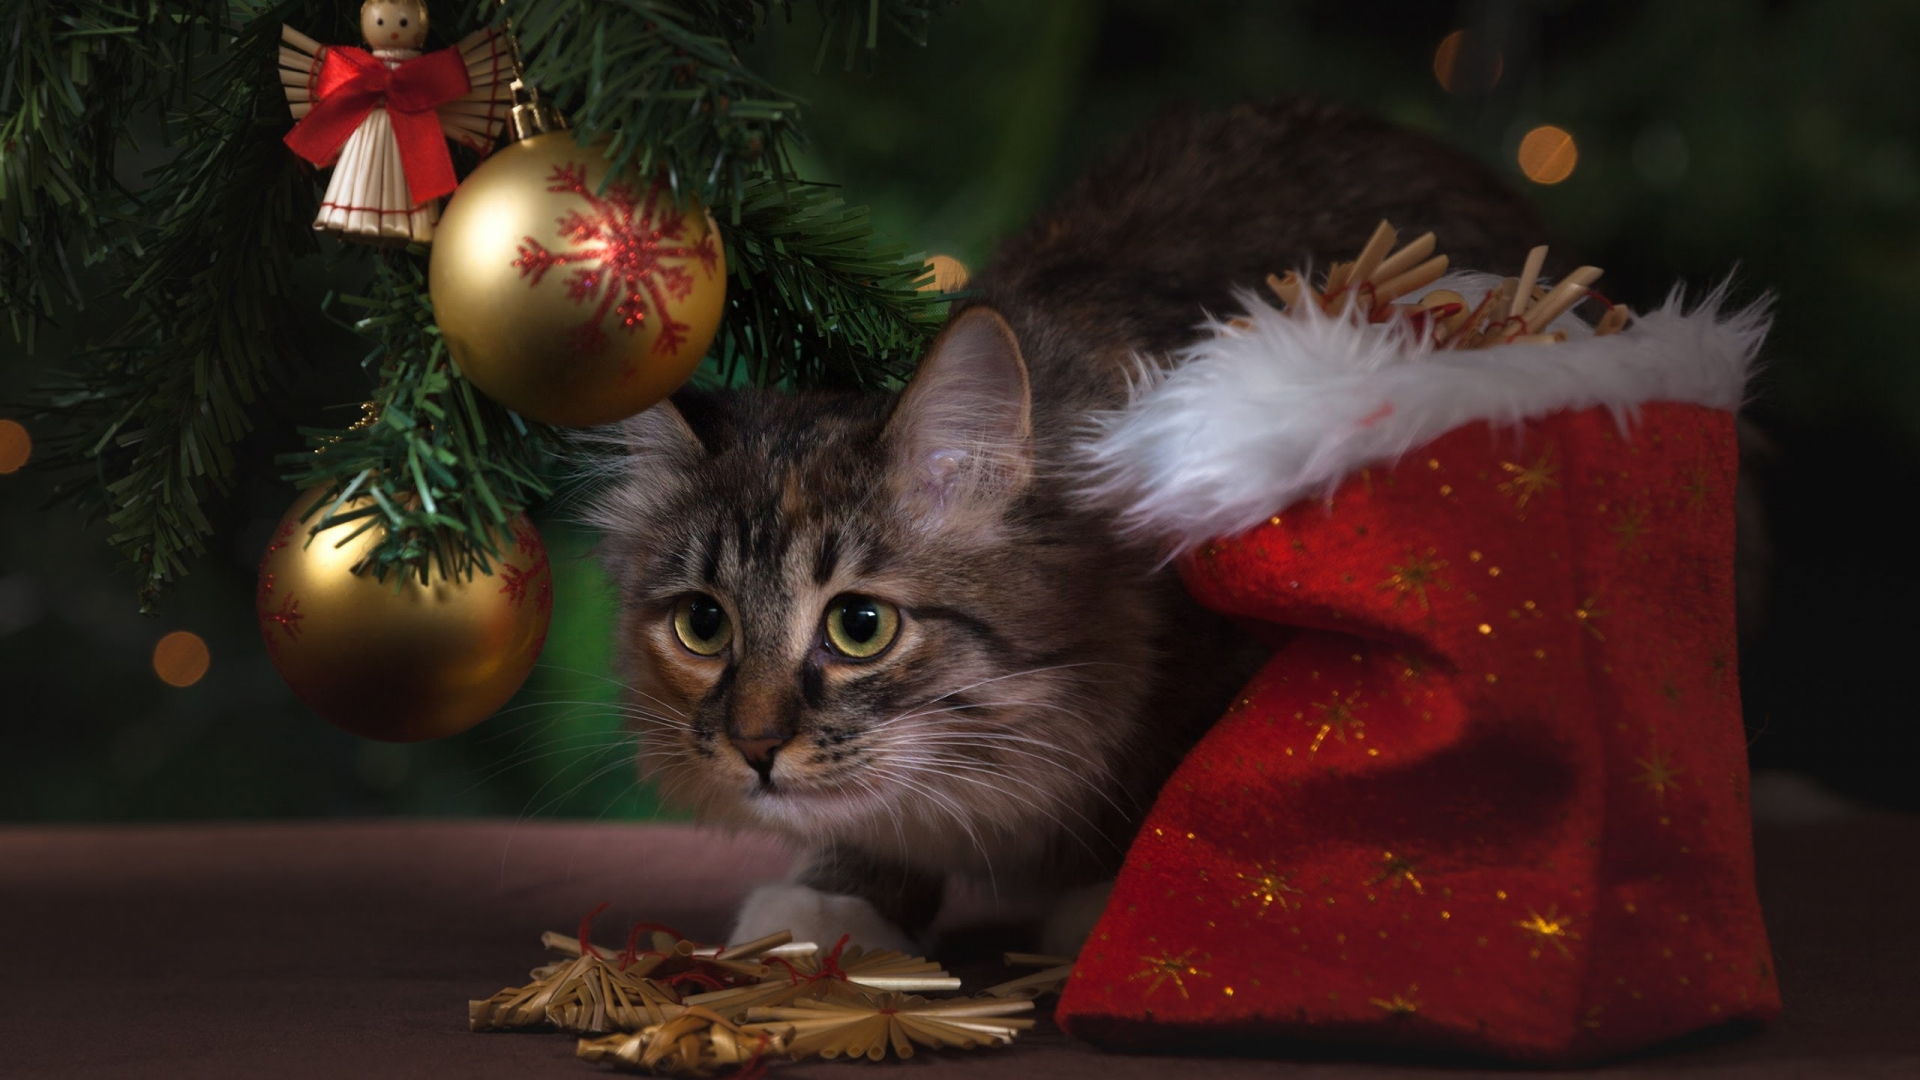 Download 1920x1080 Wallpaper Kitty Cat And Christmas